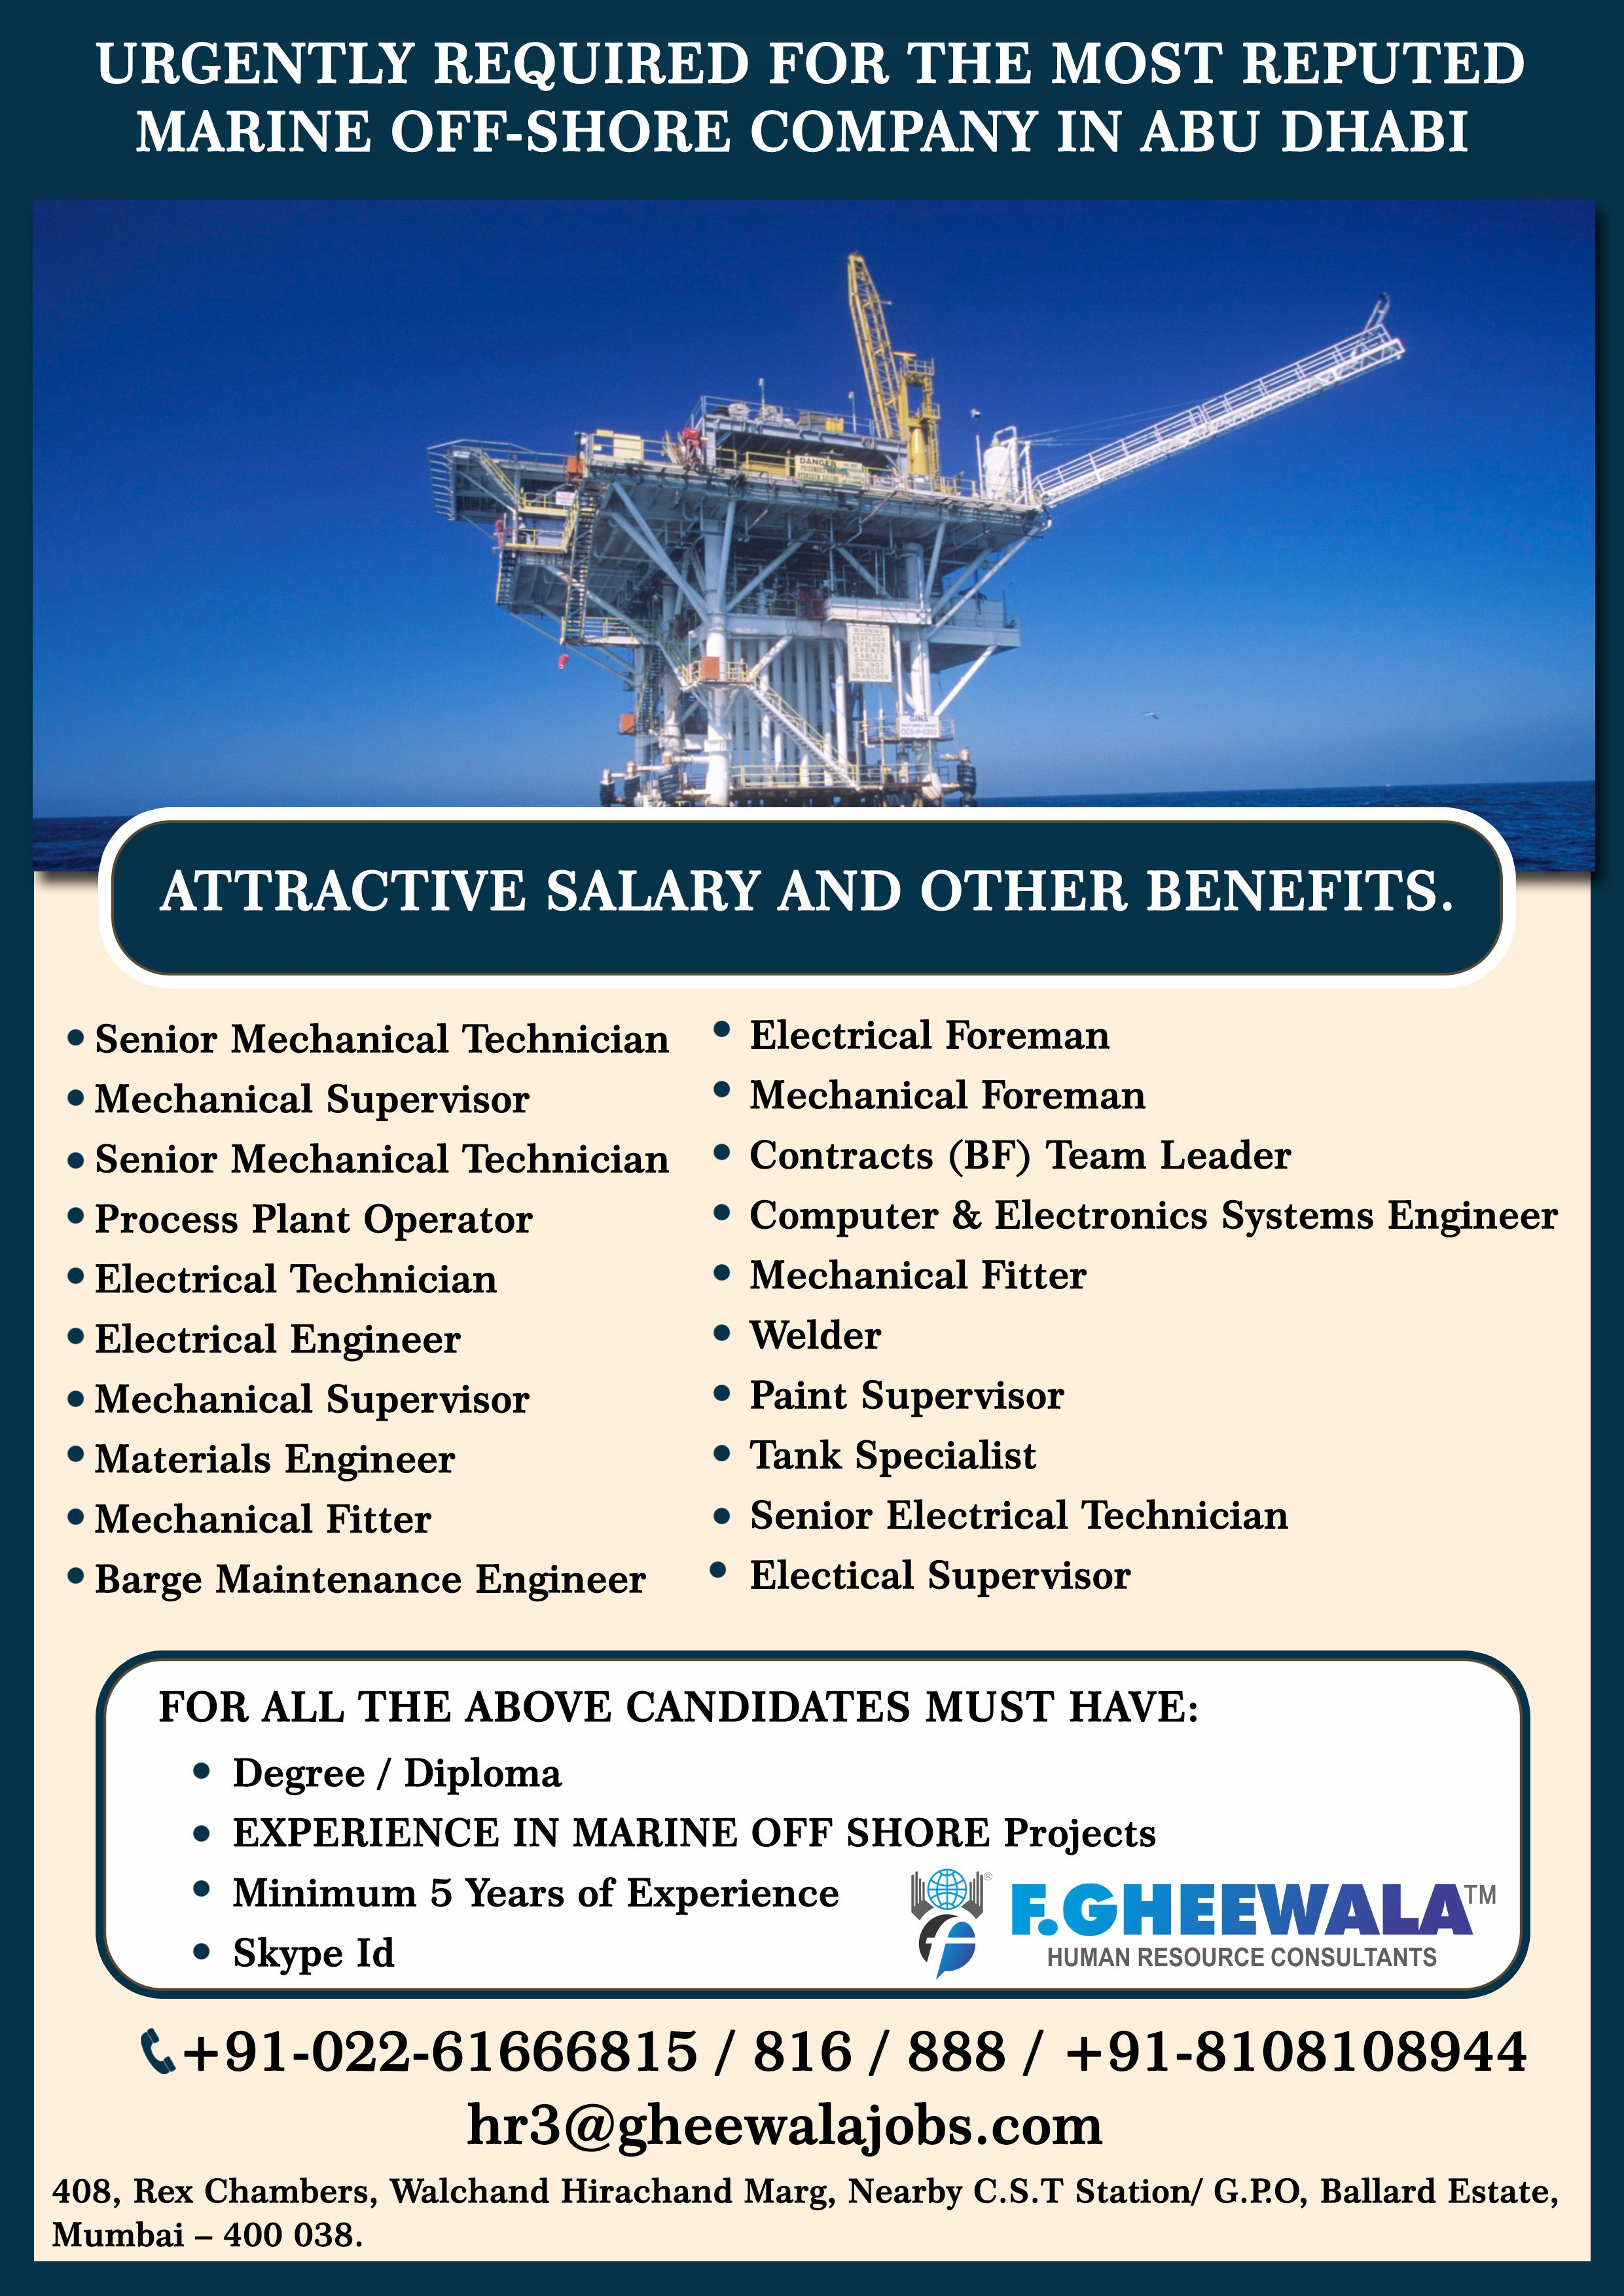 Urgent Requirements for the Most Reputed Marine Offshore